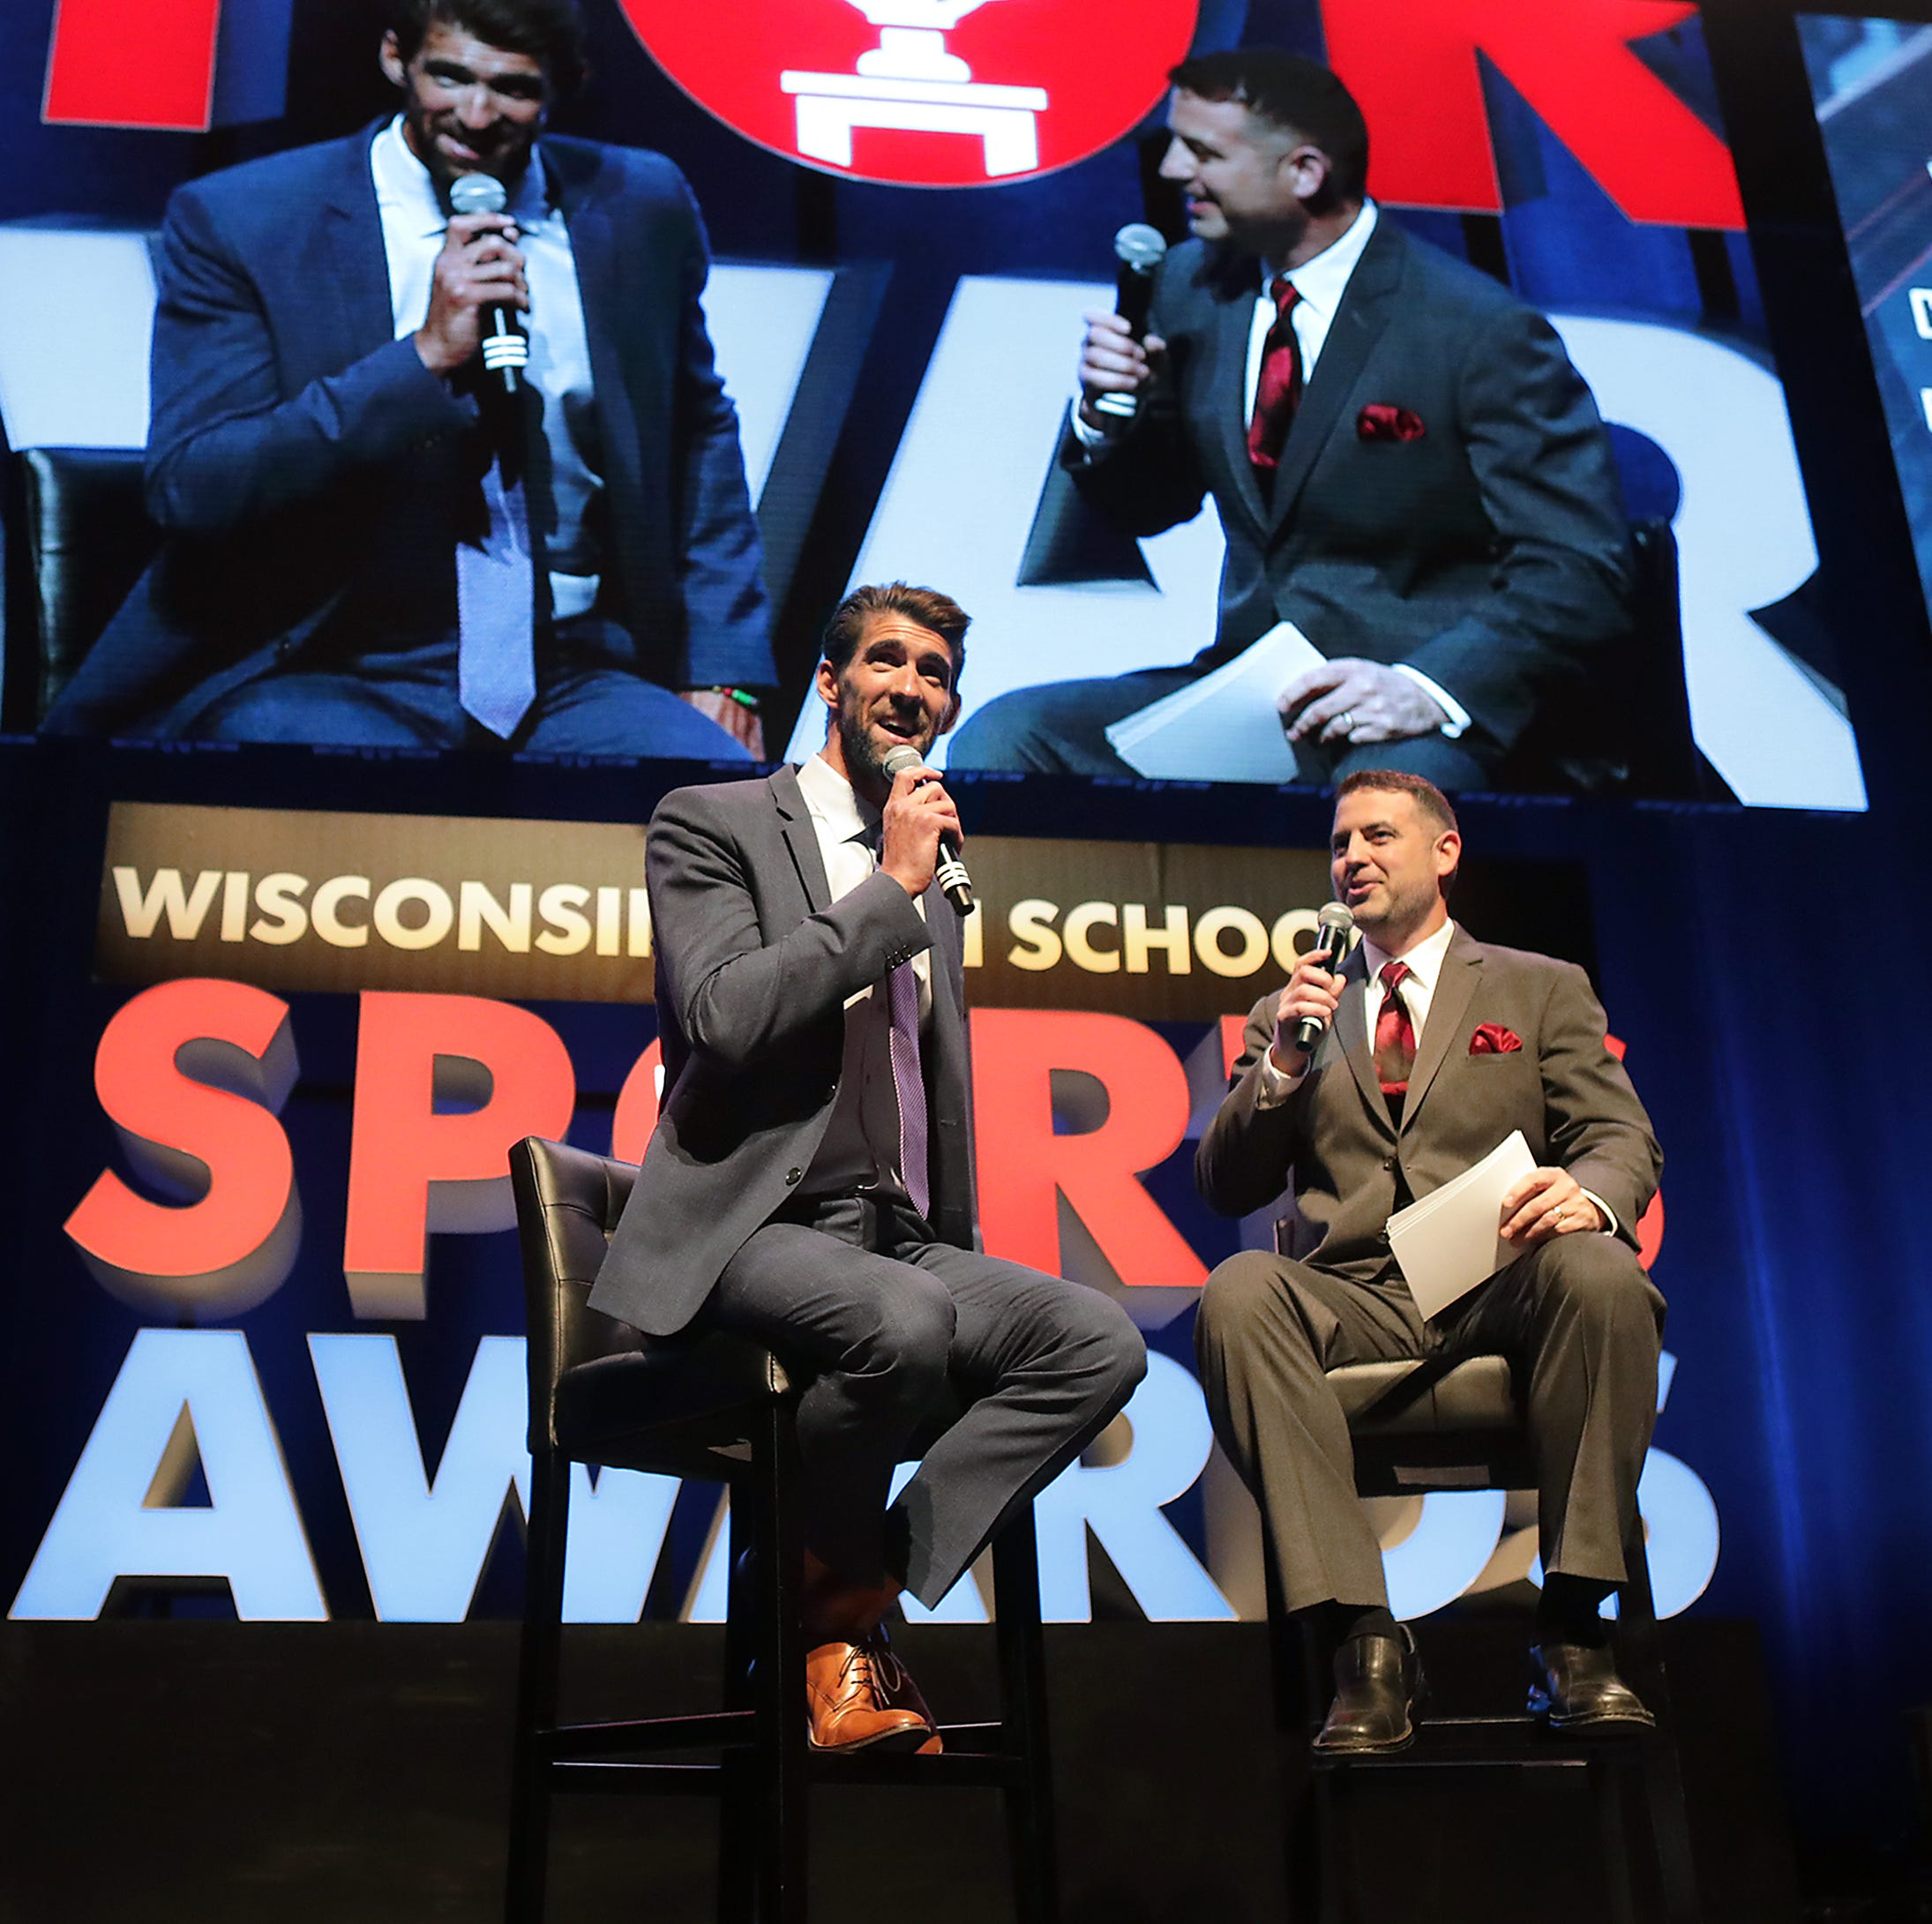 Michael Phelps, prep stars share stage at High School Sports Awards show